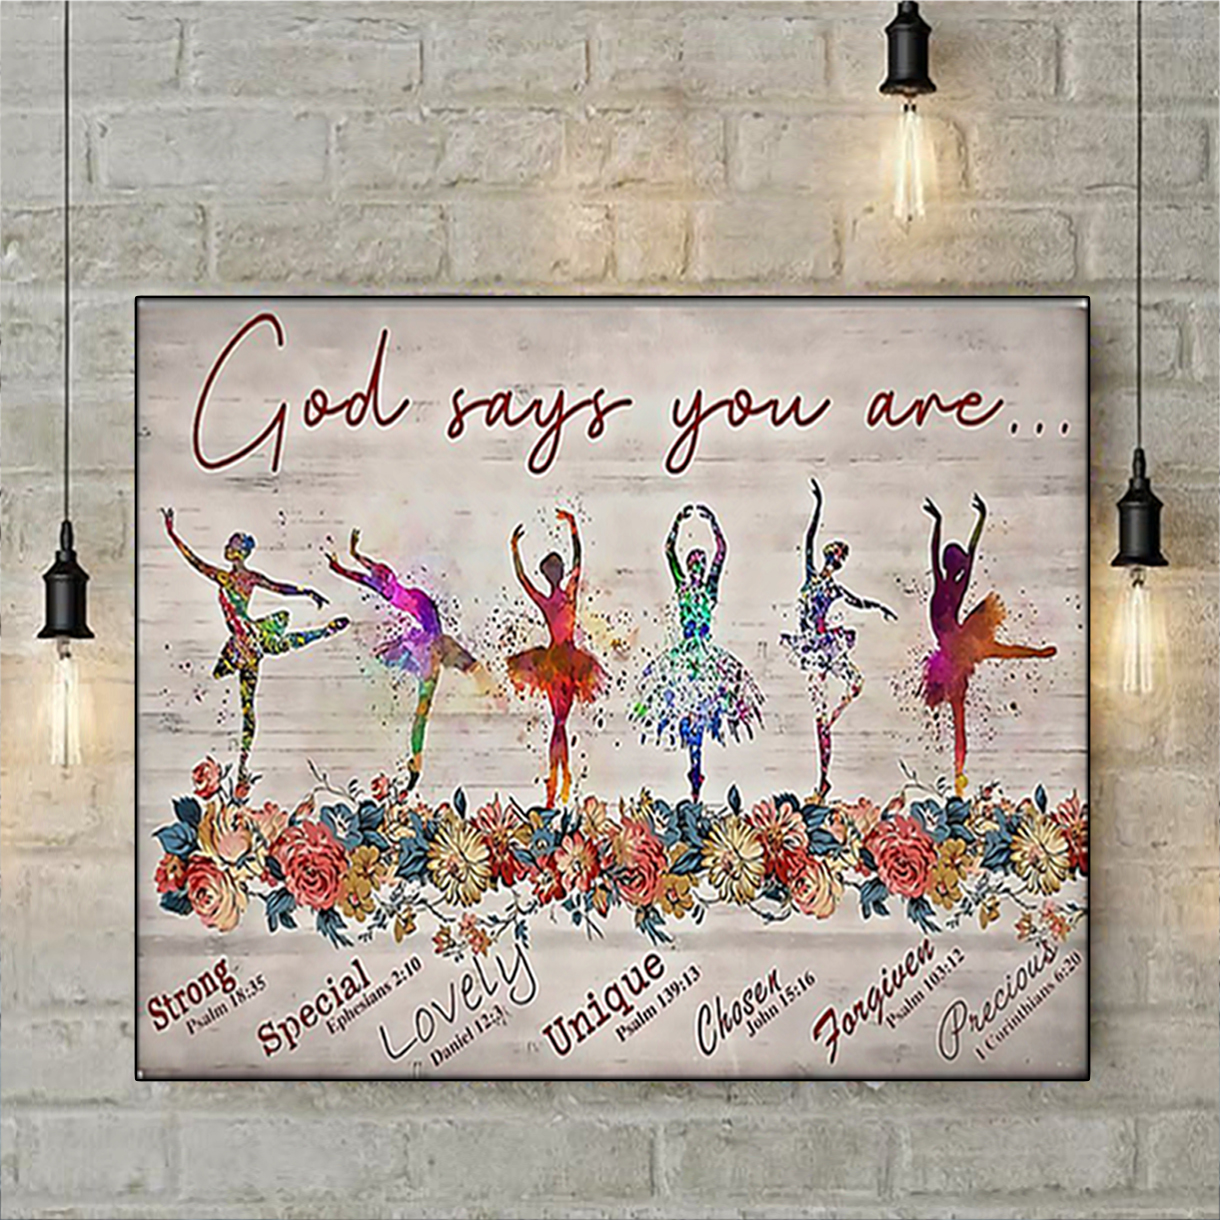 Ballet god says you are poster A2